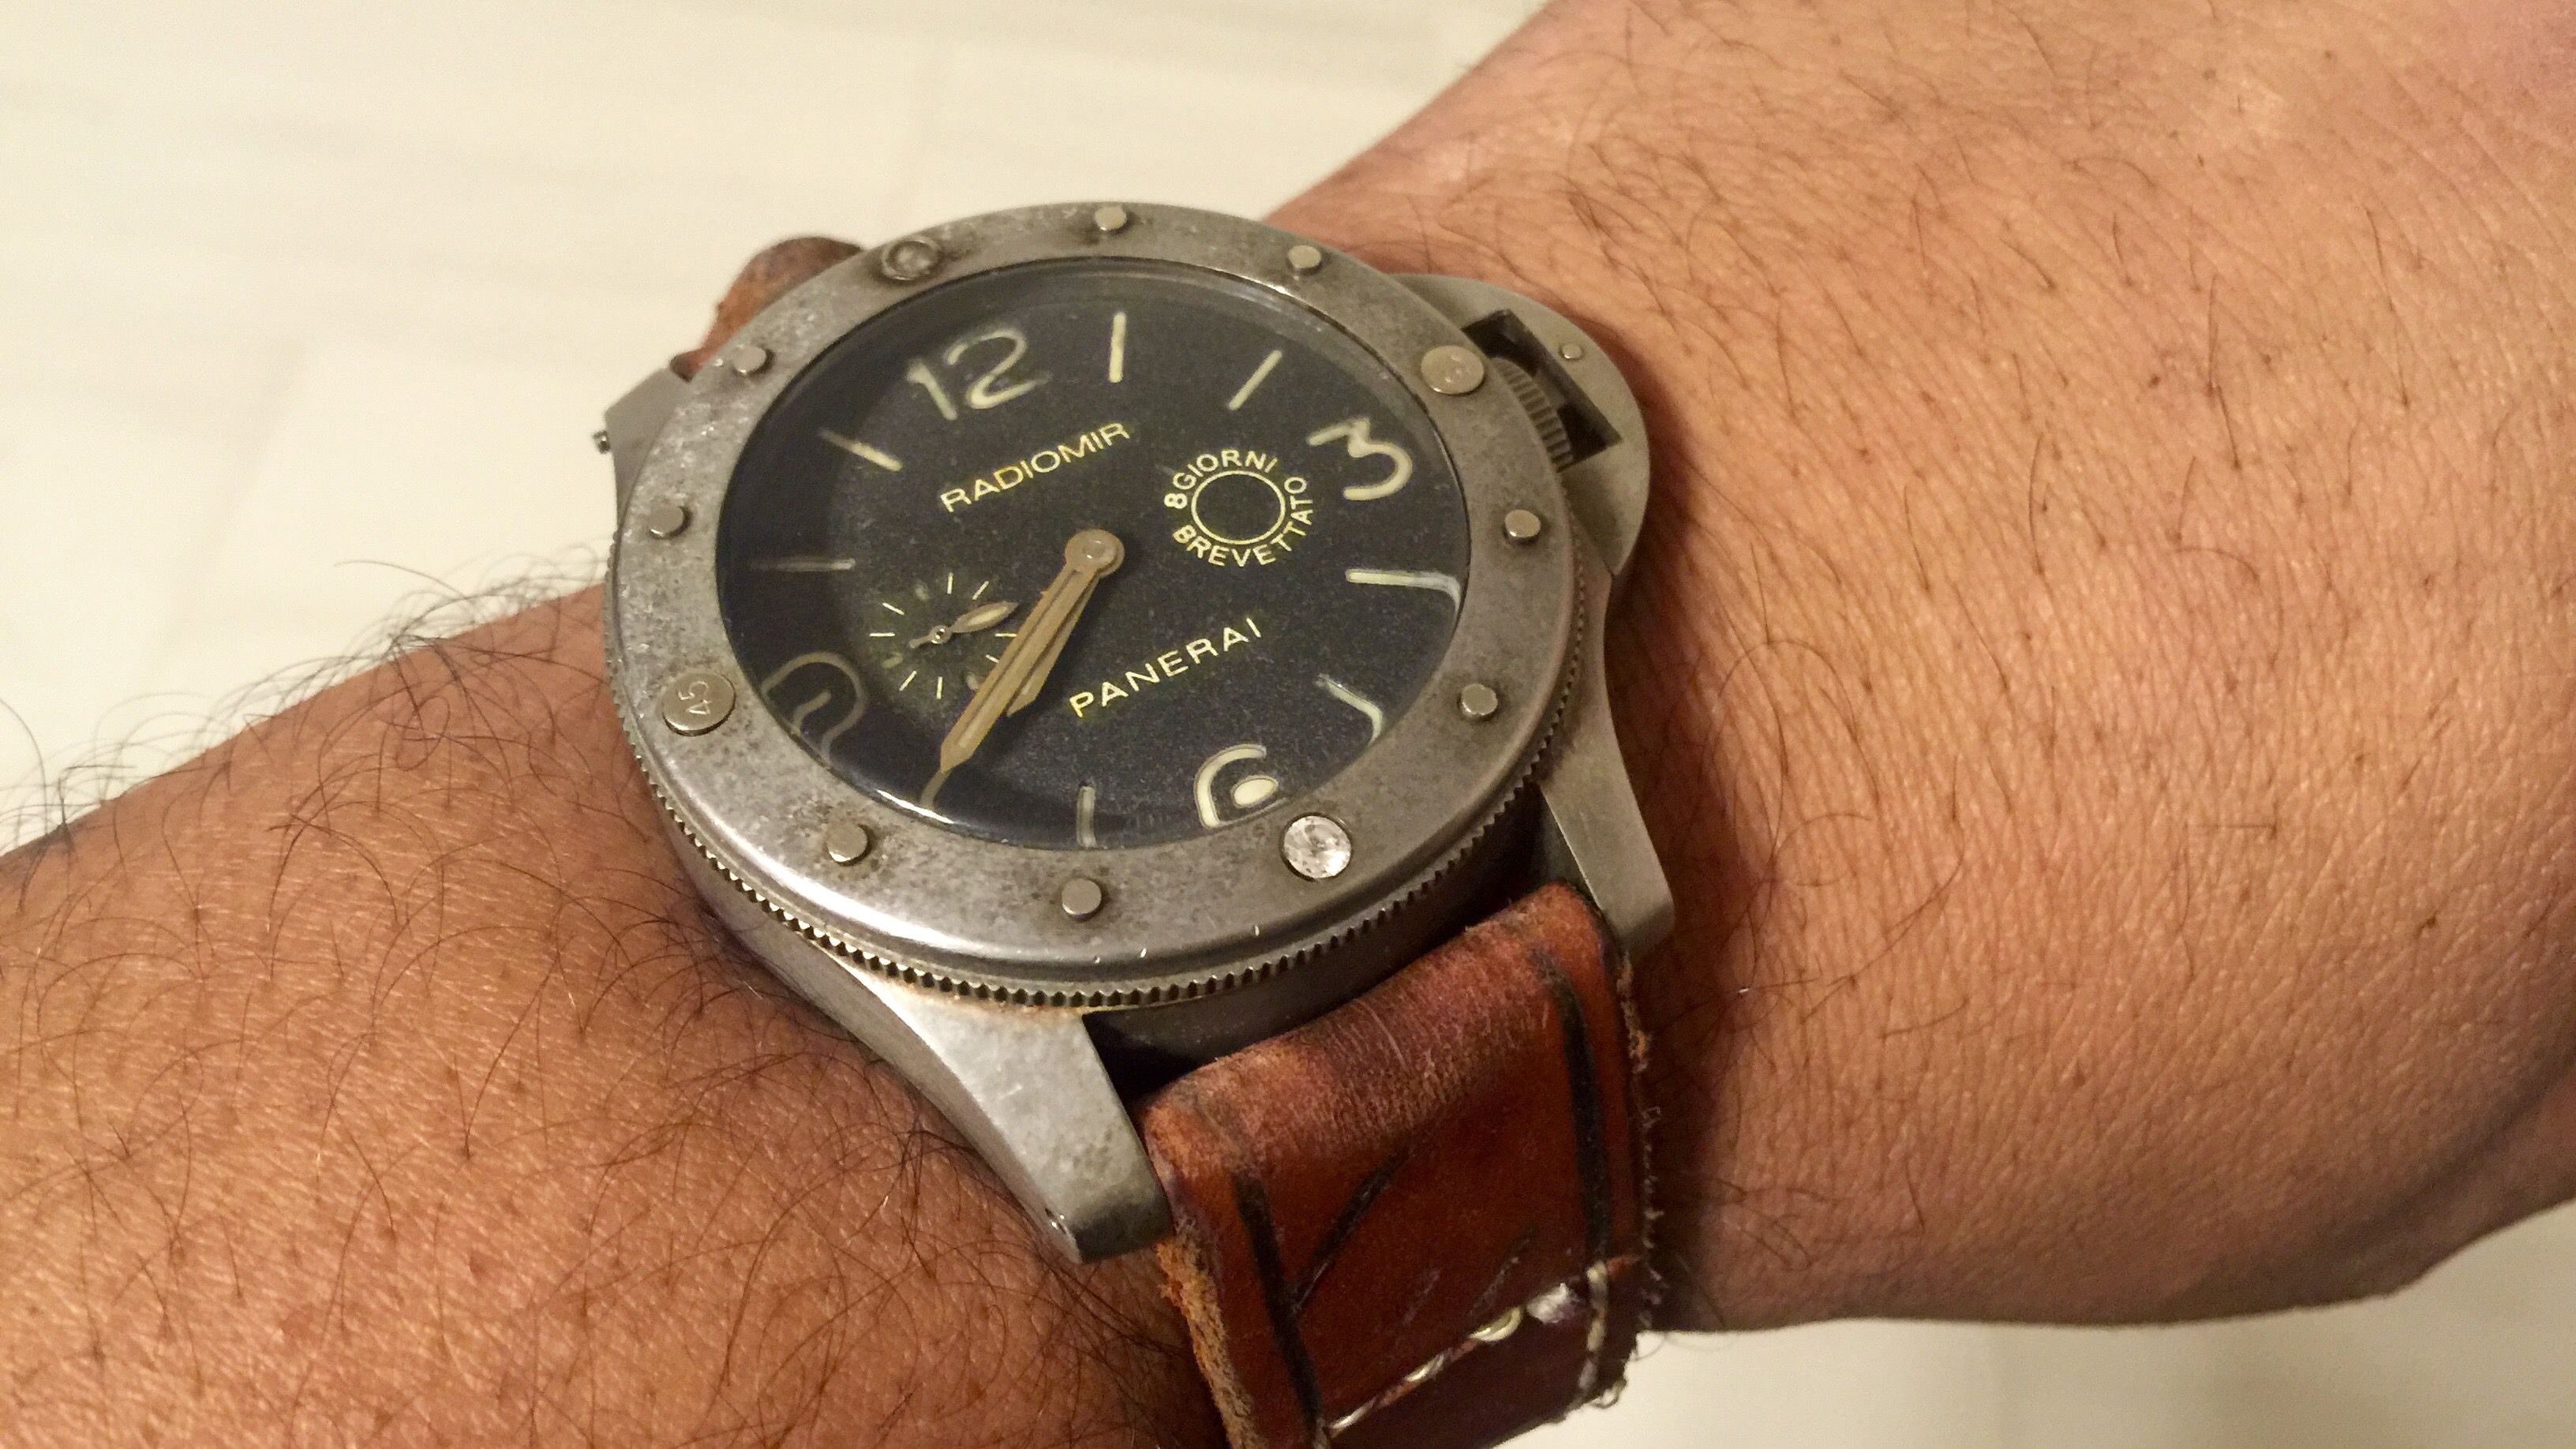 non vietnam badass via issued the survey glycine image popular war watches military of px a shift analog airman